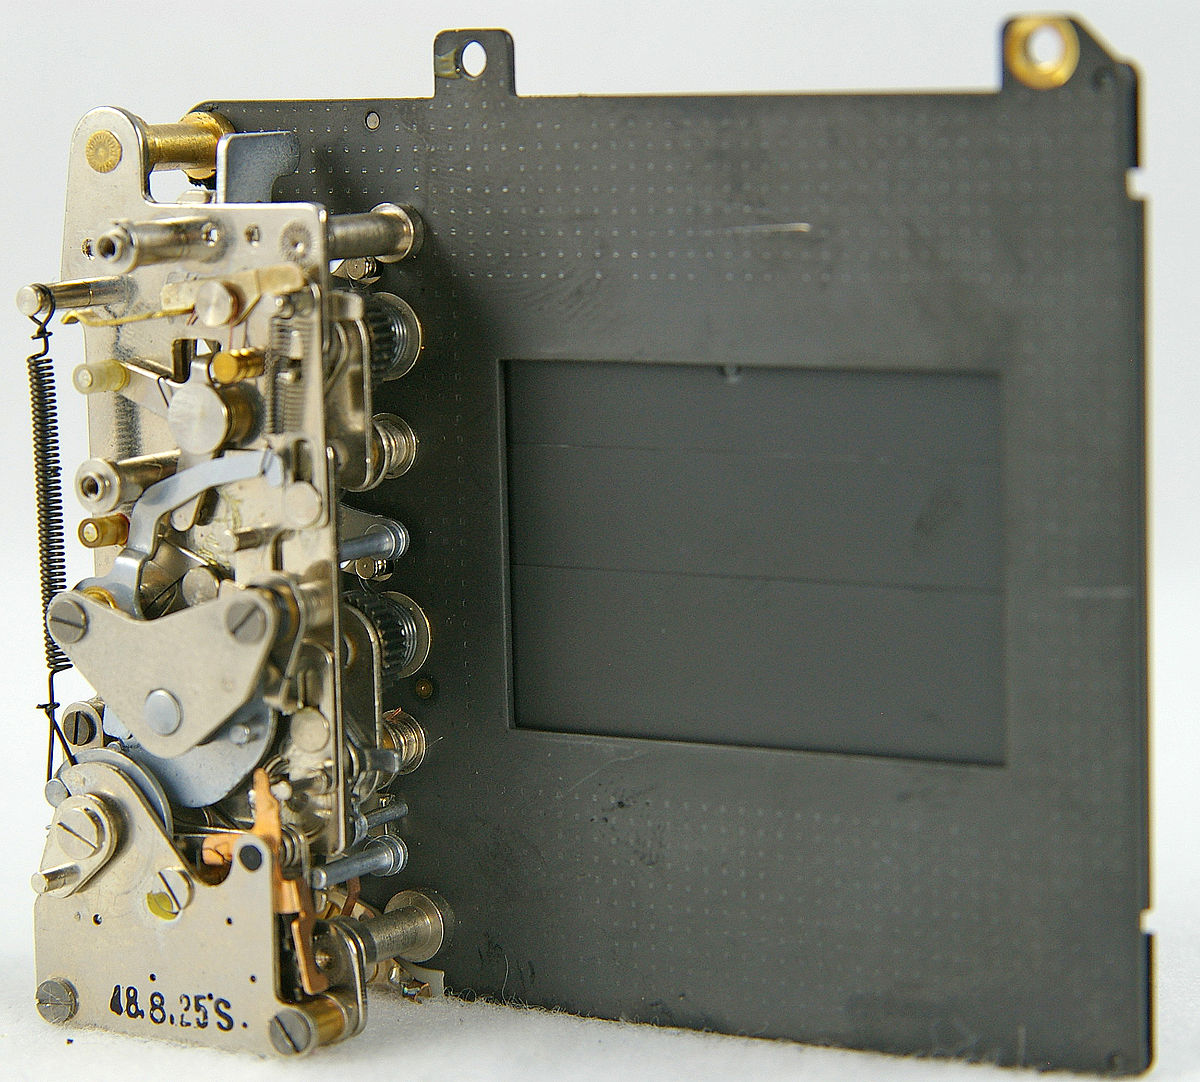 Focal Plane Shutter Wikipedia Specialized Circuit Drives 150v Piezoelectric Motor Using Lowvoltage